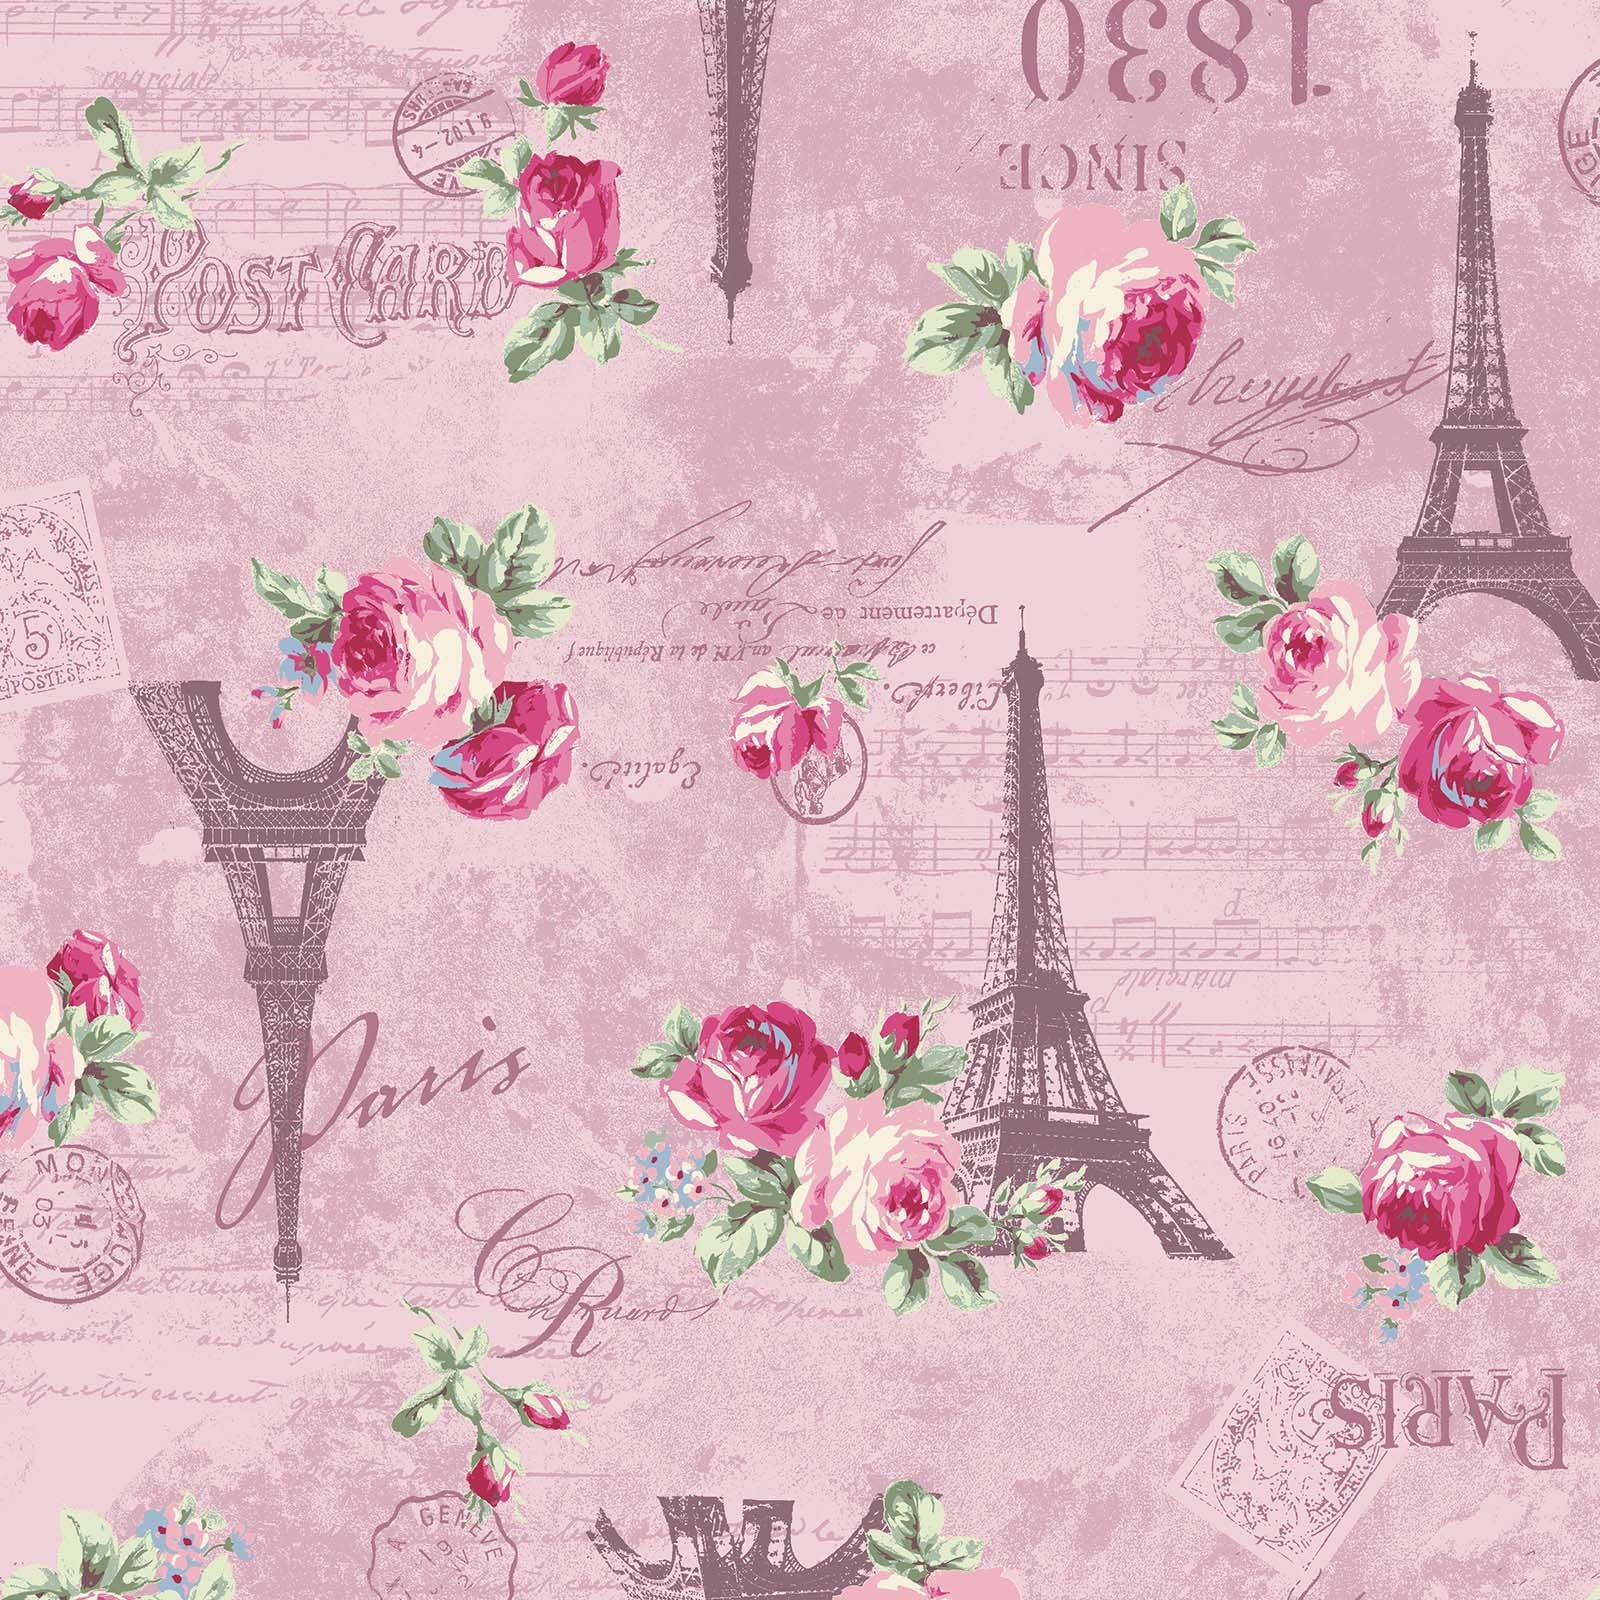 Ruru Rose Bouquet in Paris cotton fabric by Quilt Gate Ru2370-12C Eiffel Tower Roses on Pink